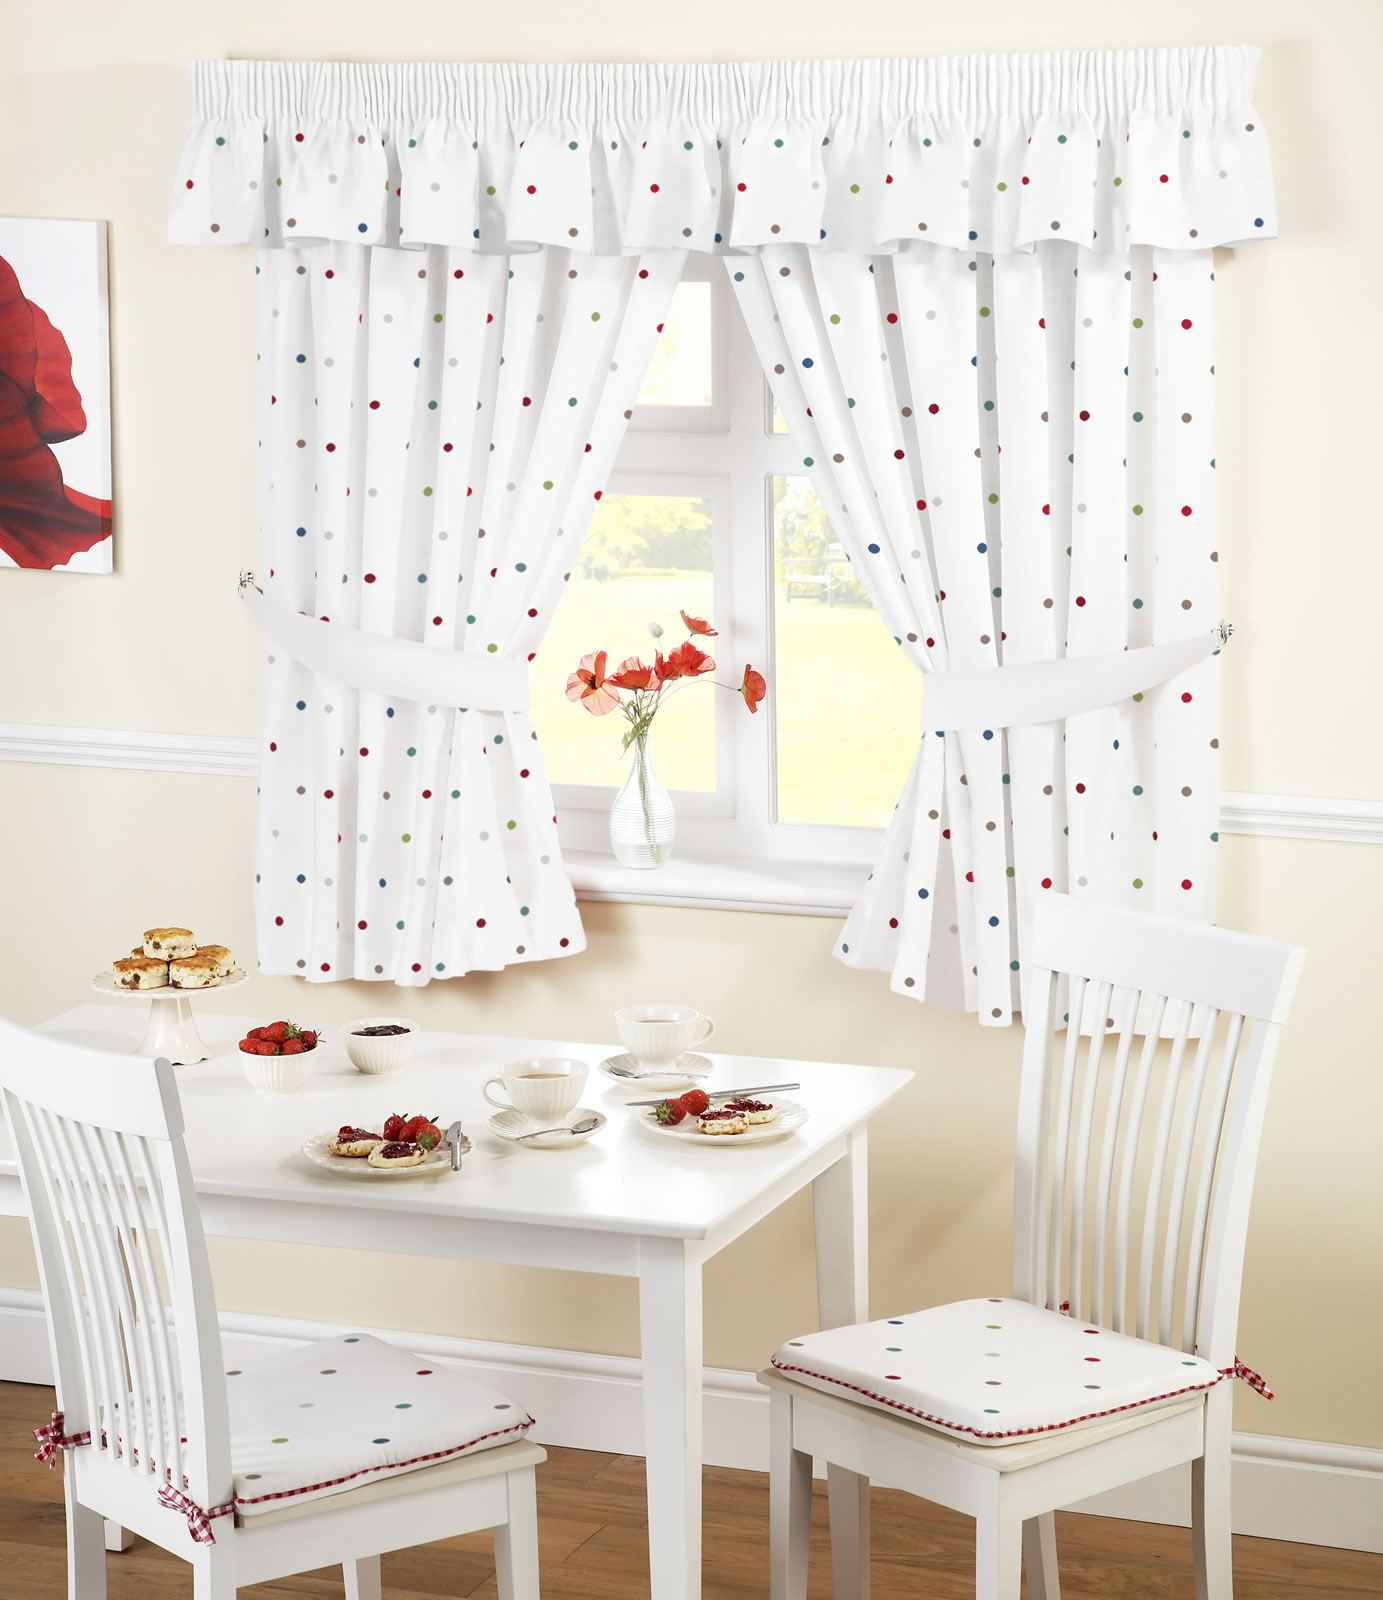 Curtain Designs For Kitchen Windows: Ready Made Kitchen Window Curtains